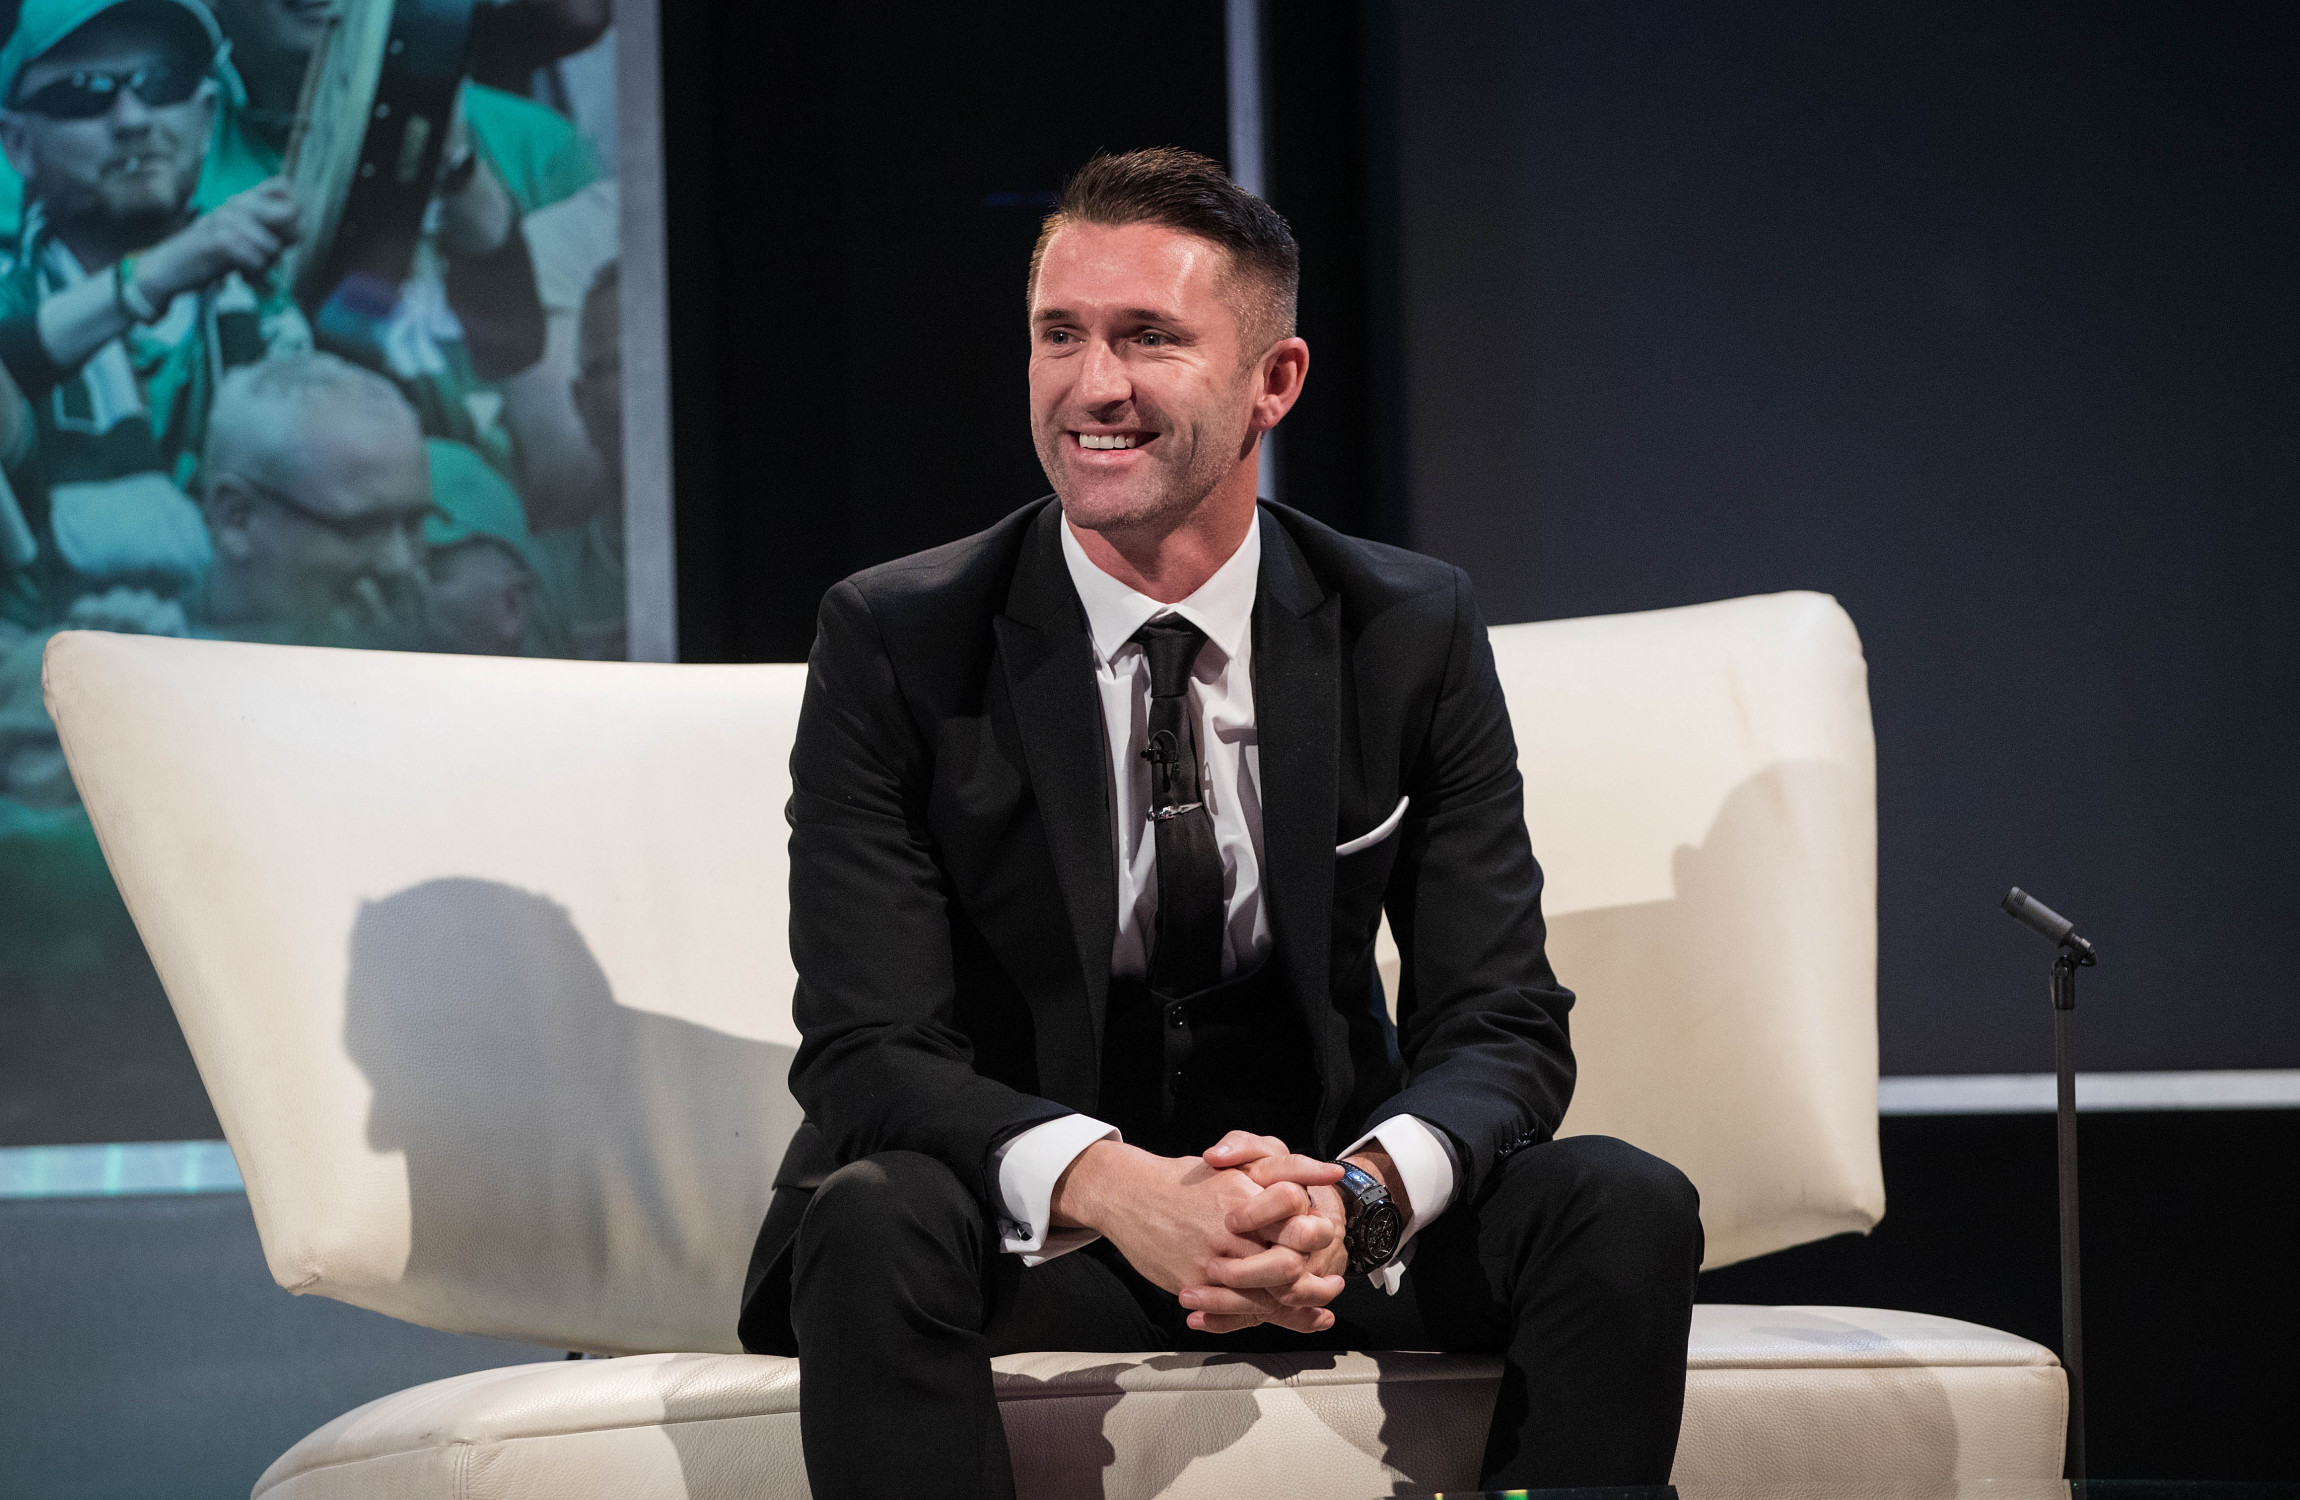 Robbie Keane set to make move to Indian Super League